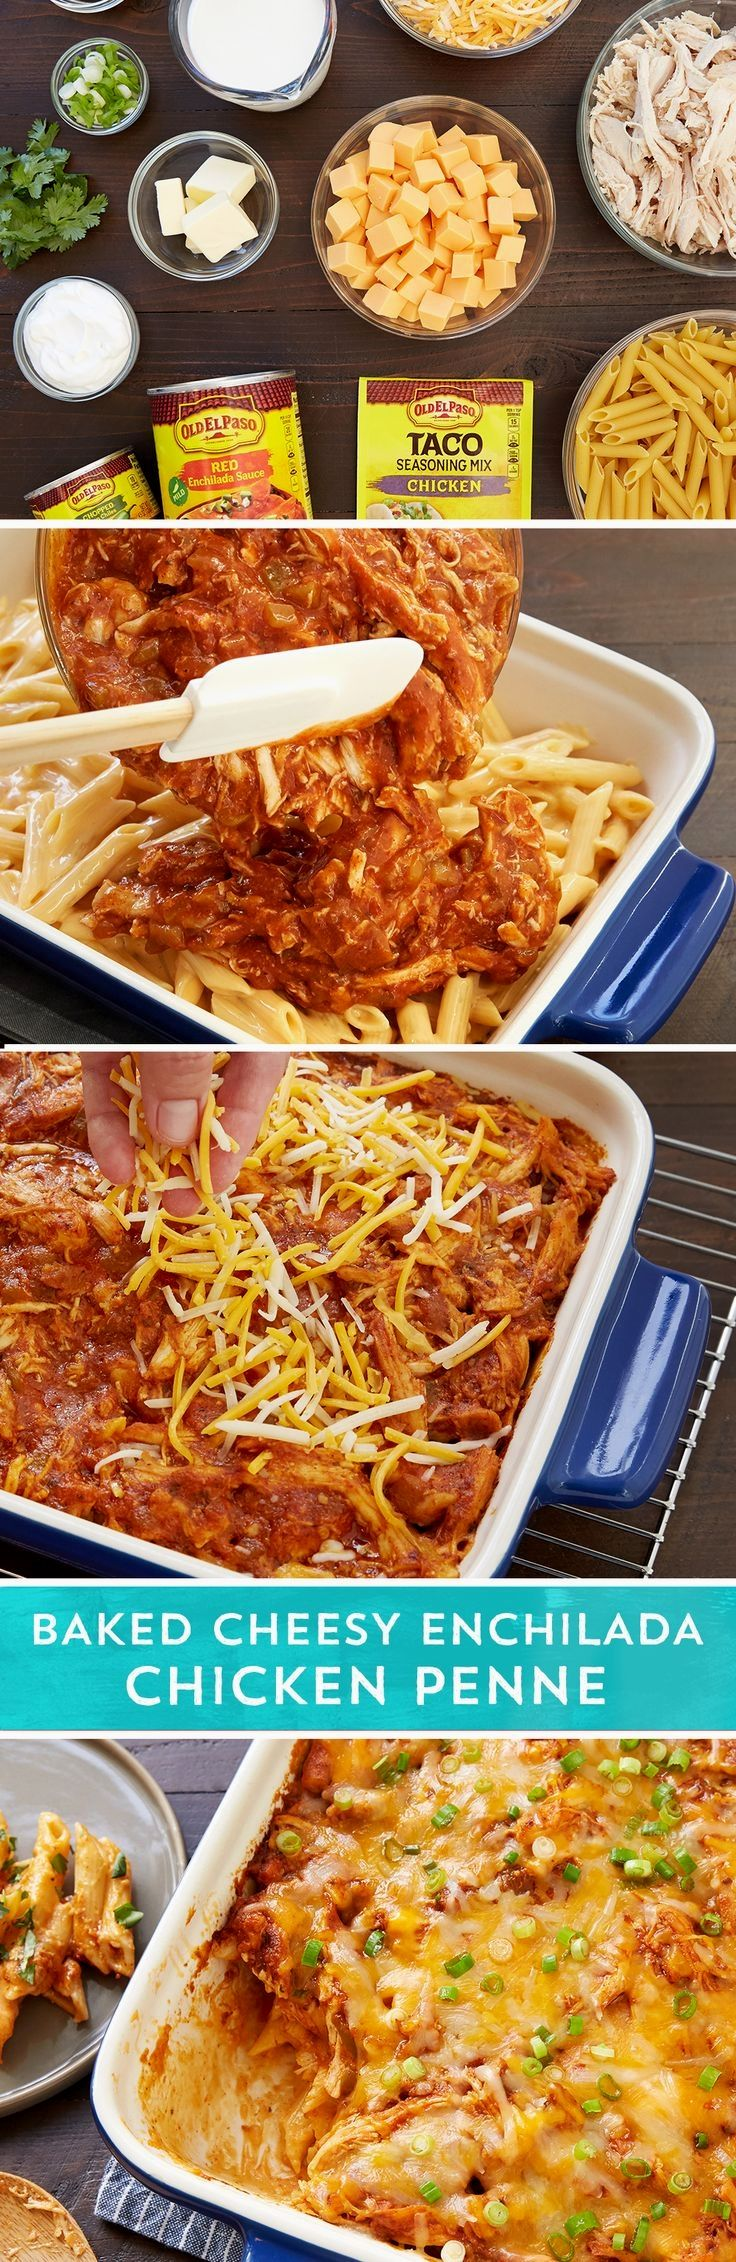 Want enchilada flavor with the family-friendly ease of a pasta bake? Look no further! This cheesy chicken dinner fits the bill. Cooked pasta and easy microwave cheese sauce gets topped with a delicious mixture of chicken, Old El Paso™ enchilada sauce, Old El Paso ™green chiles, butter, and Old El Paso™ chicken taco seasoning. Bake it all for 28-32 minutes while you enjoy a little pre-dinner family time. Dish it up and watch the whole crew enjoy. Leftovers make a great school lunch the ..